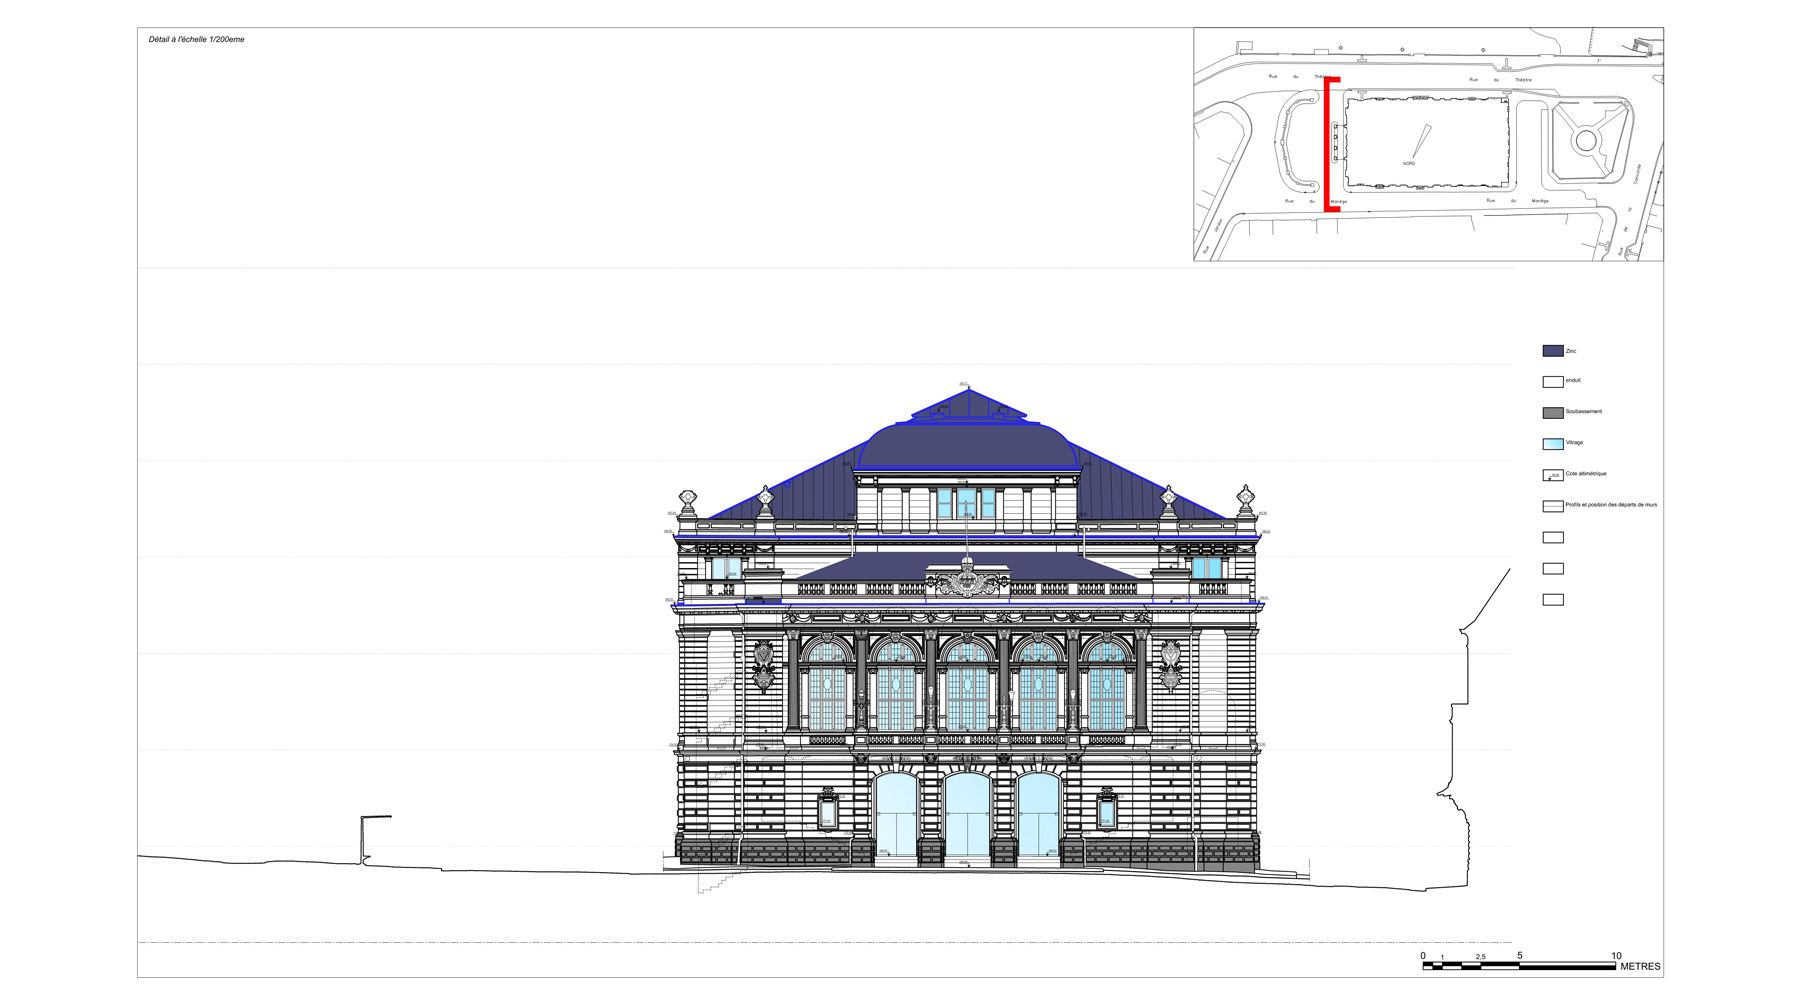 Grand théâtre, Verviers - Elevation